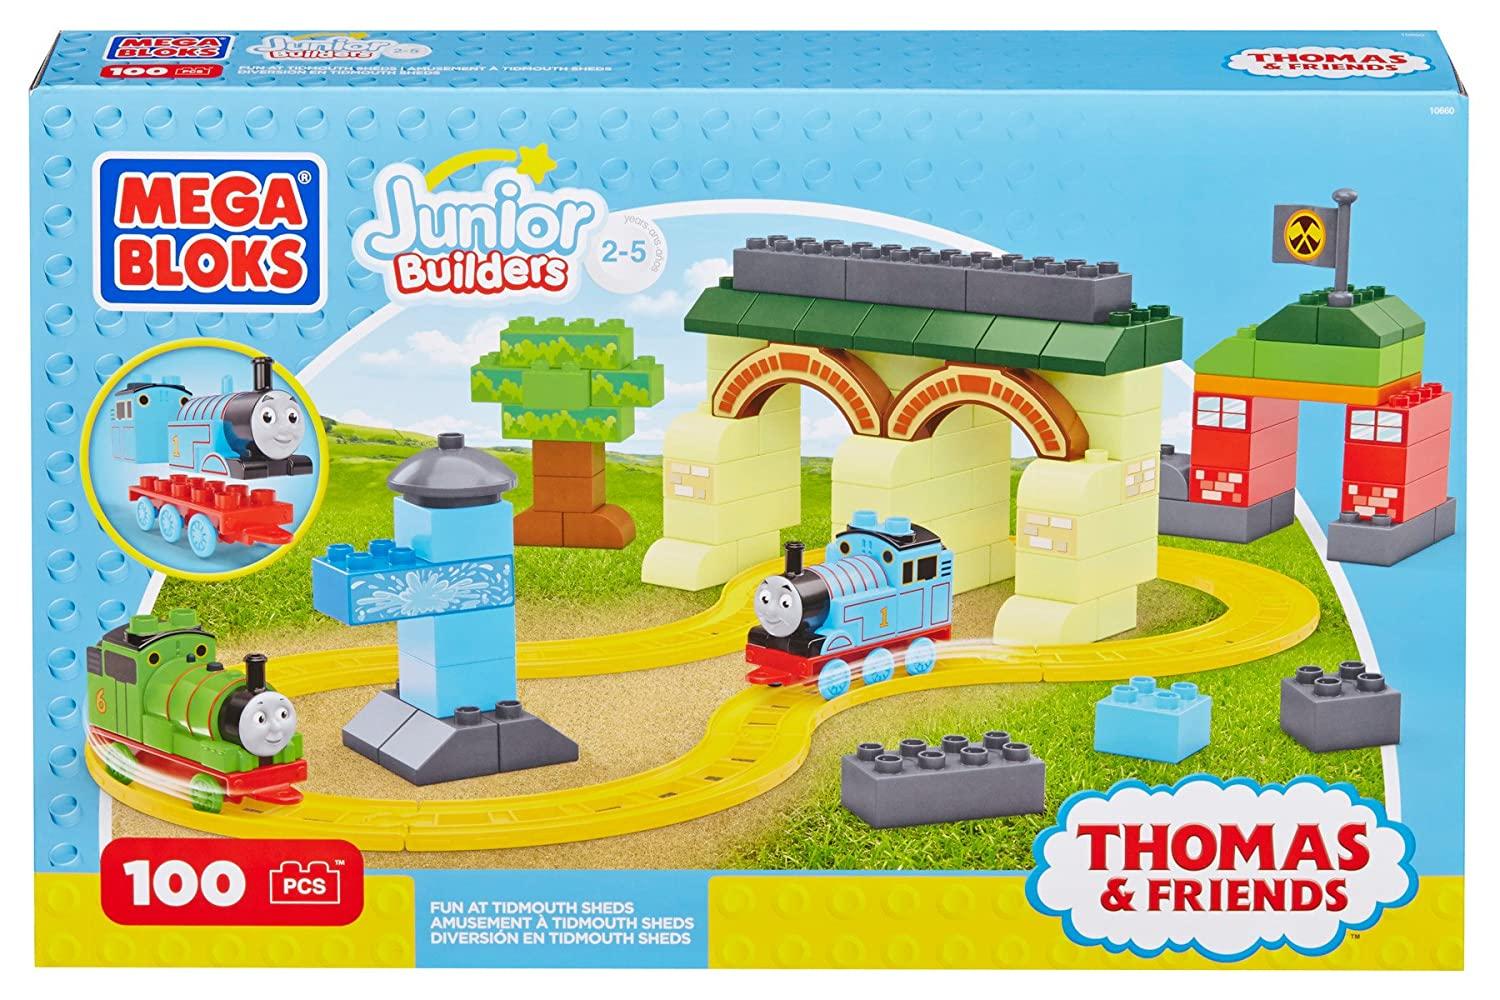 Amazon.com: Mega bloks Thomas & Friends Fun at Tidmouth Sheds: Toys ...